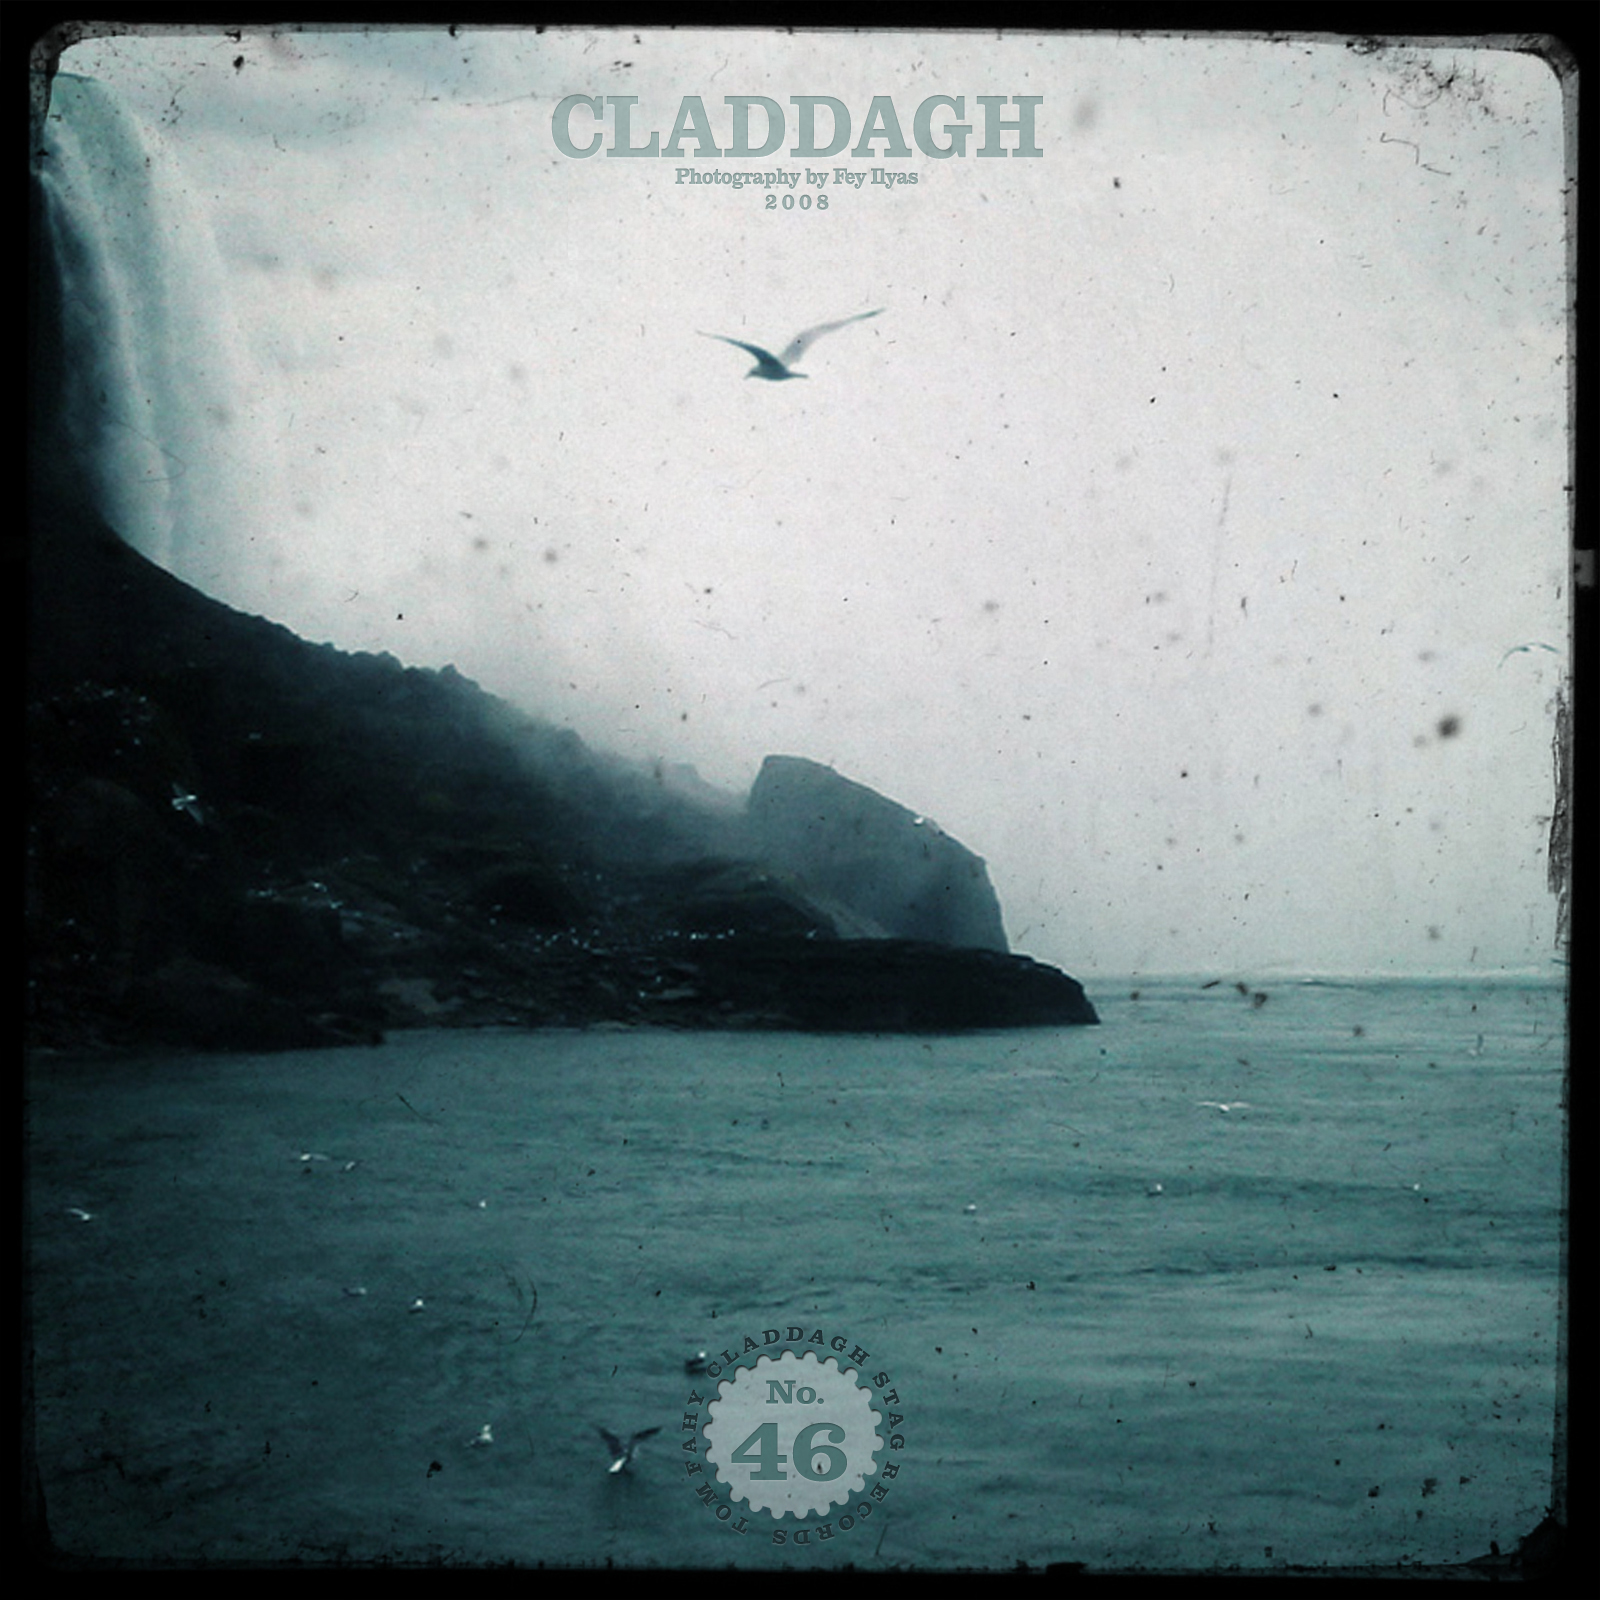 Claddagh by Tom Fahy